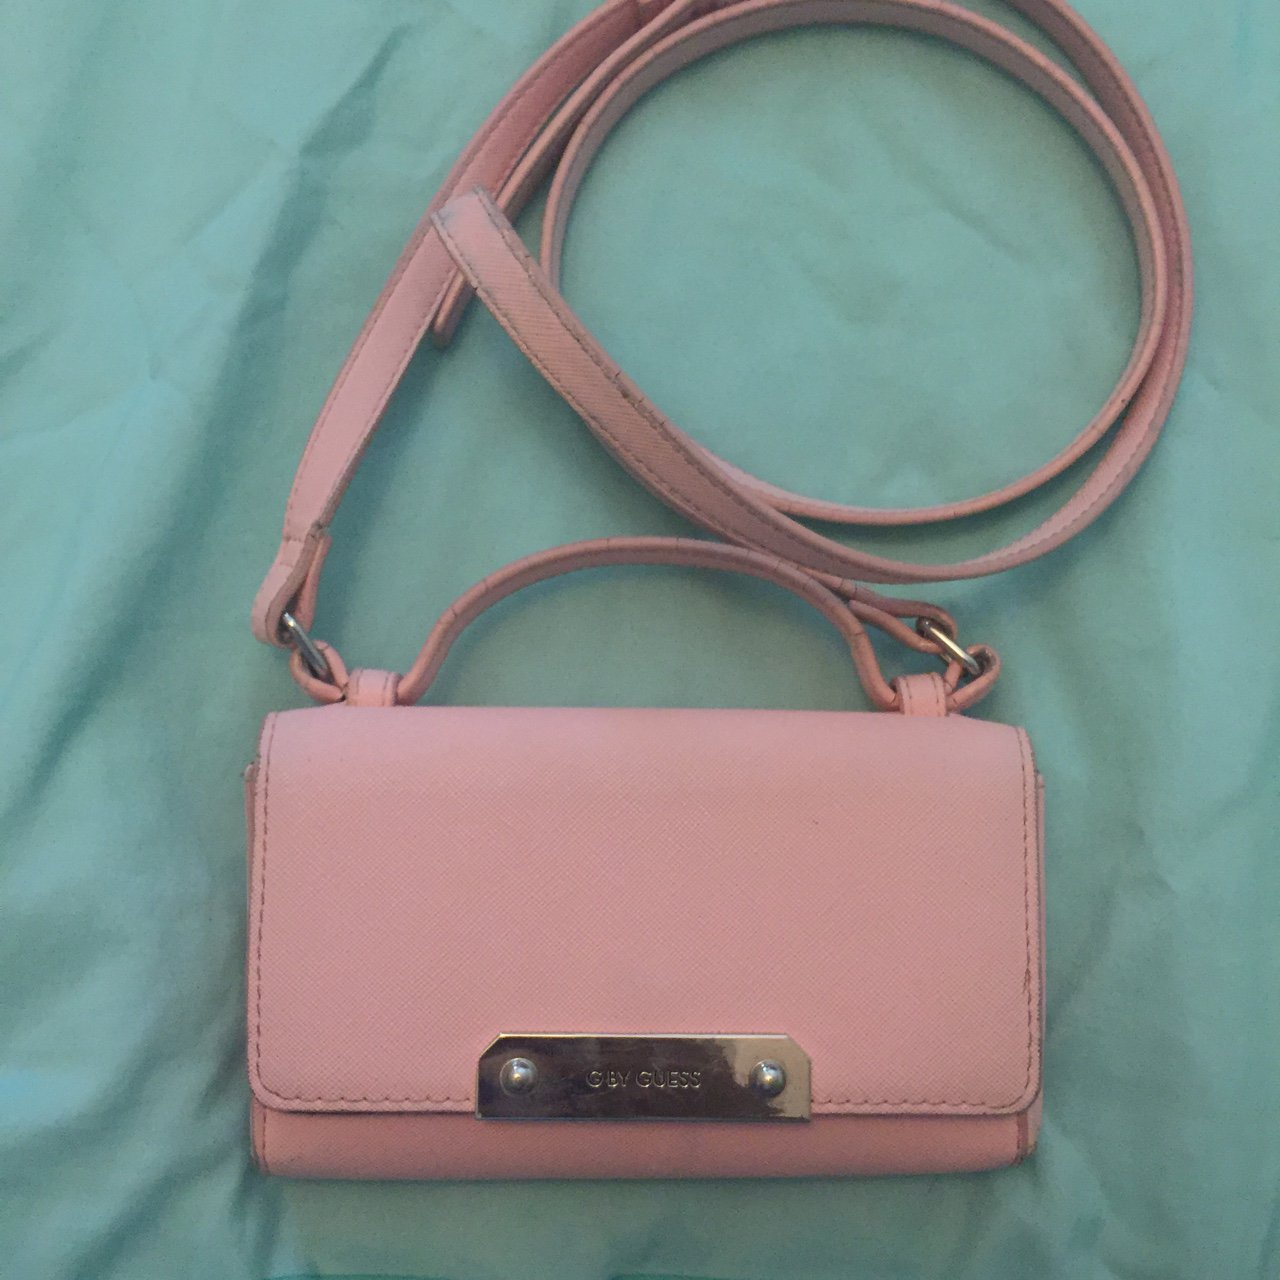 Pre-loved mini pink guess purse. Got me through the semester - Depop 12a7446fbd672